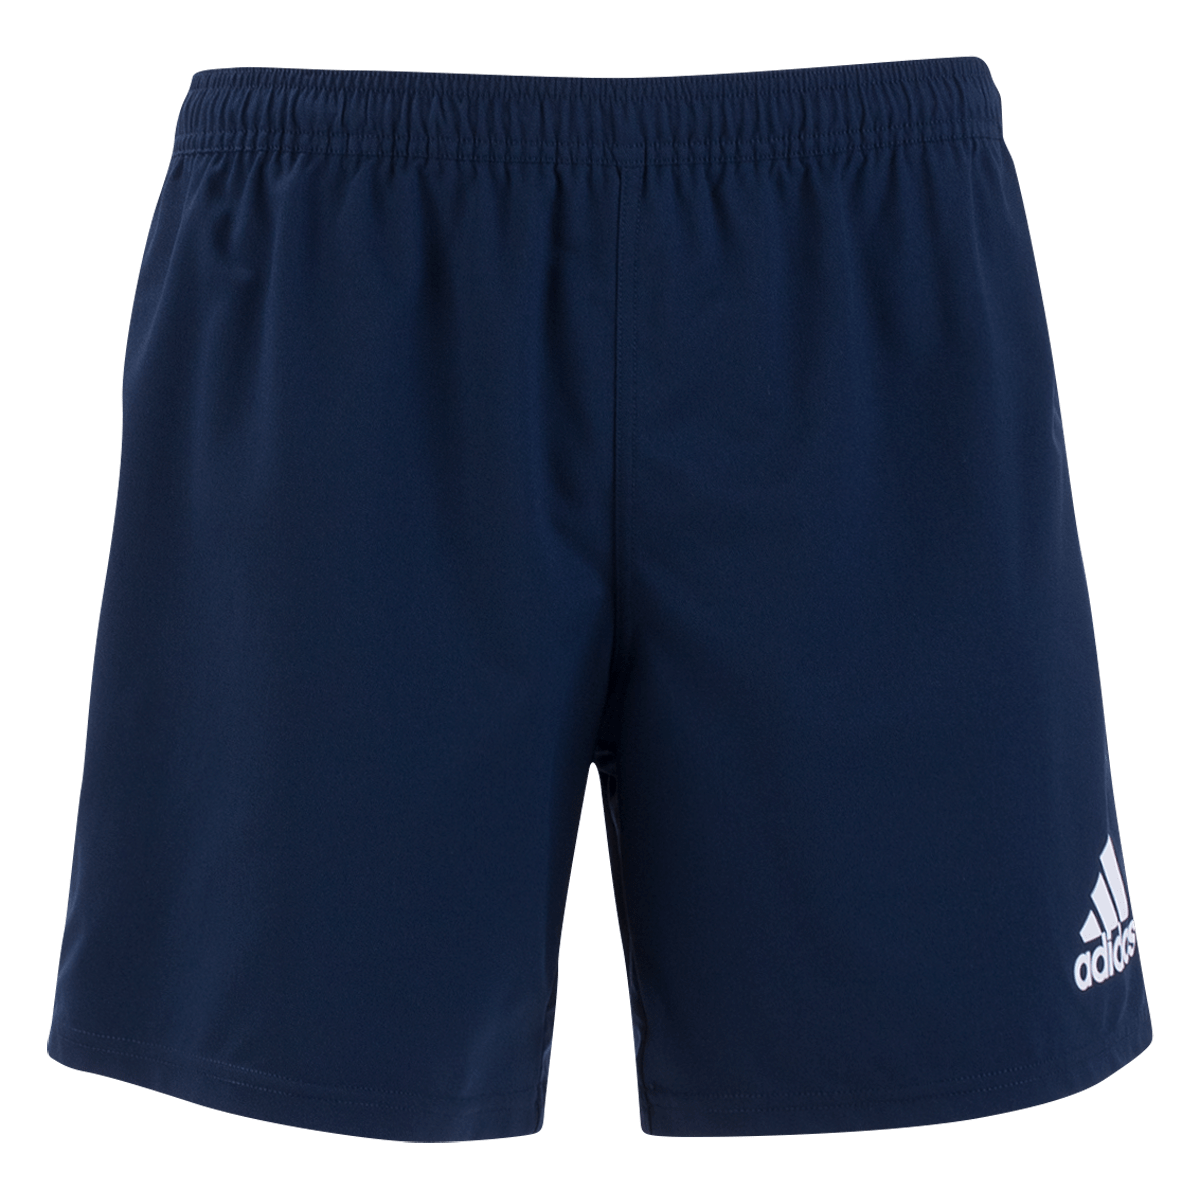 adidas 19 Navy/White 3 Stripe Shorts